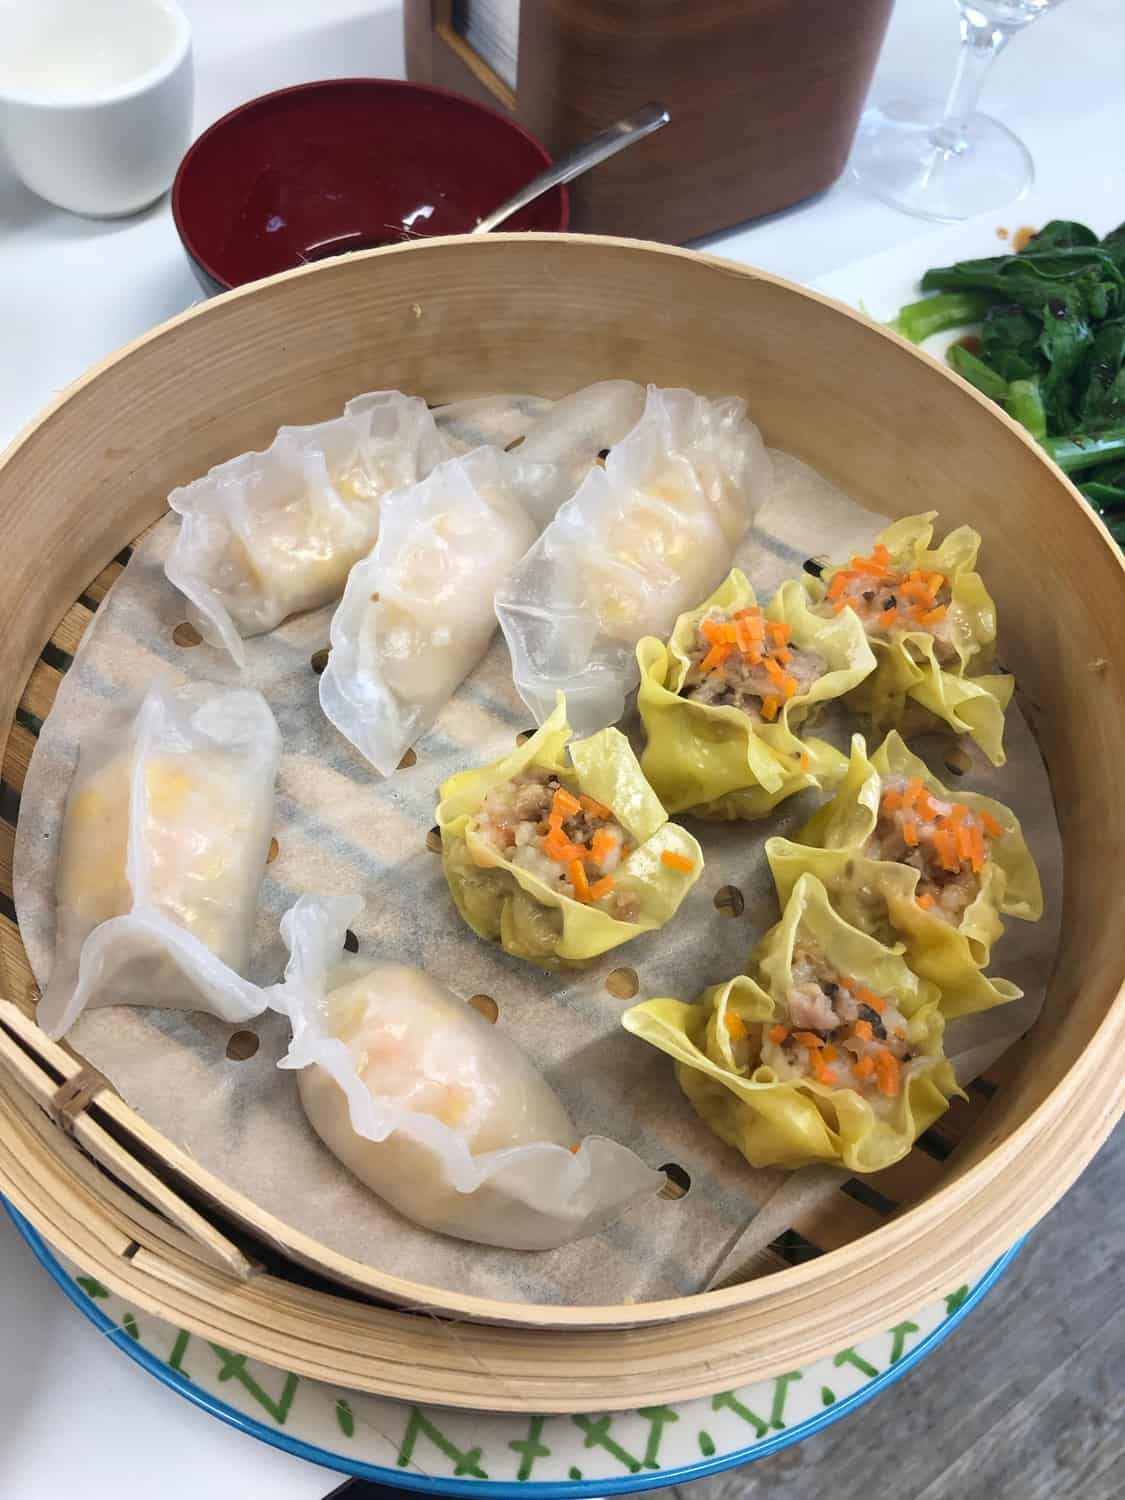 Learning How to Make Dumplings in New Zealand